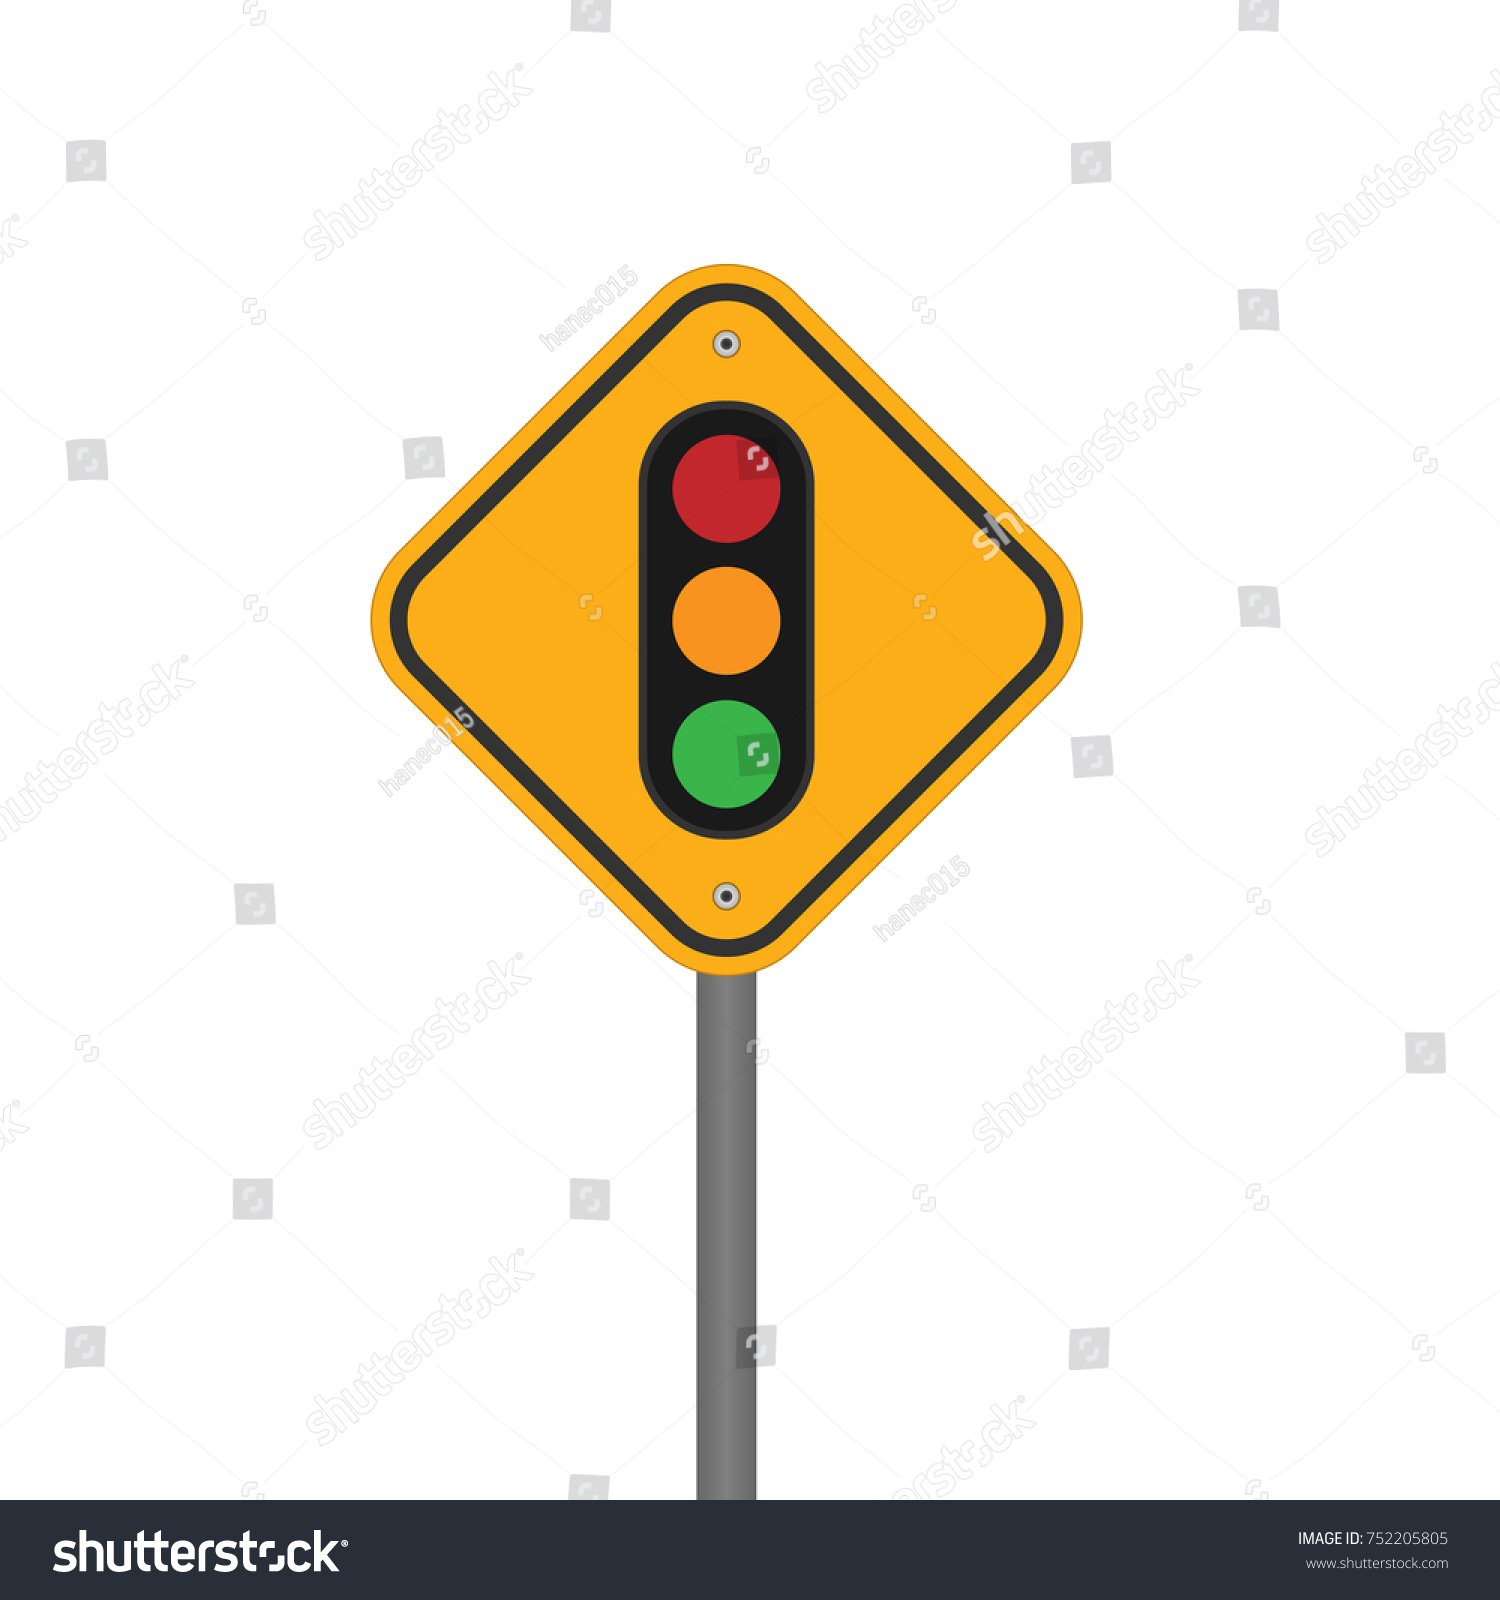 Stop light symbol images symbol and sign ideas traffic sign traffic light symbol stock vector 752205805 traffic sign traffic light symbol buycottarizona buycottarizona